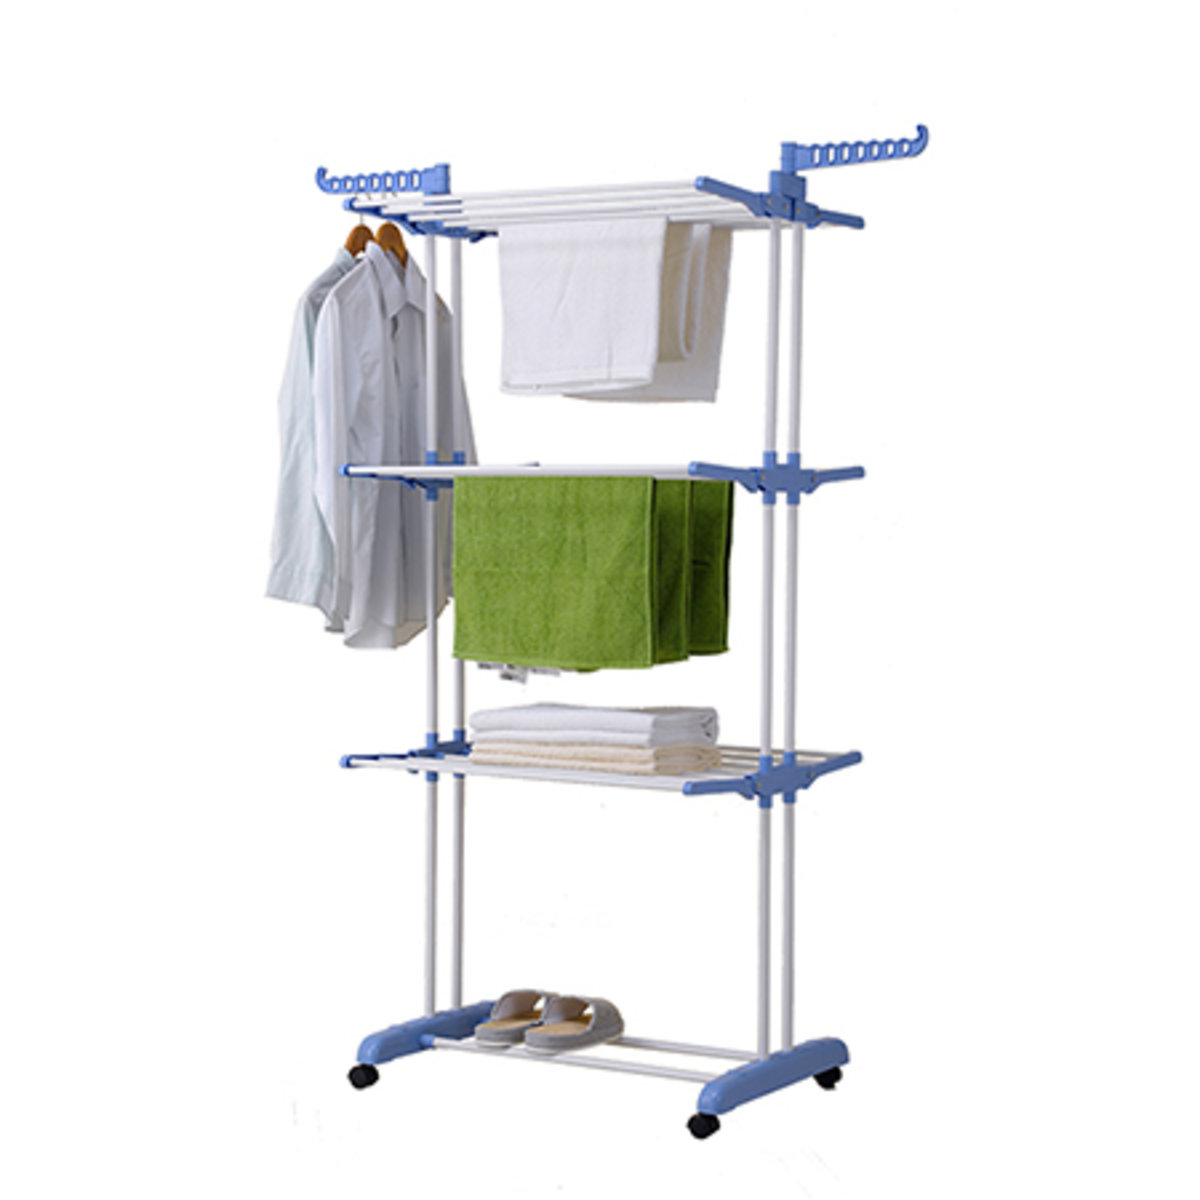 Korean foldable airfoil drying rack (blue) RK814-02